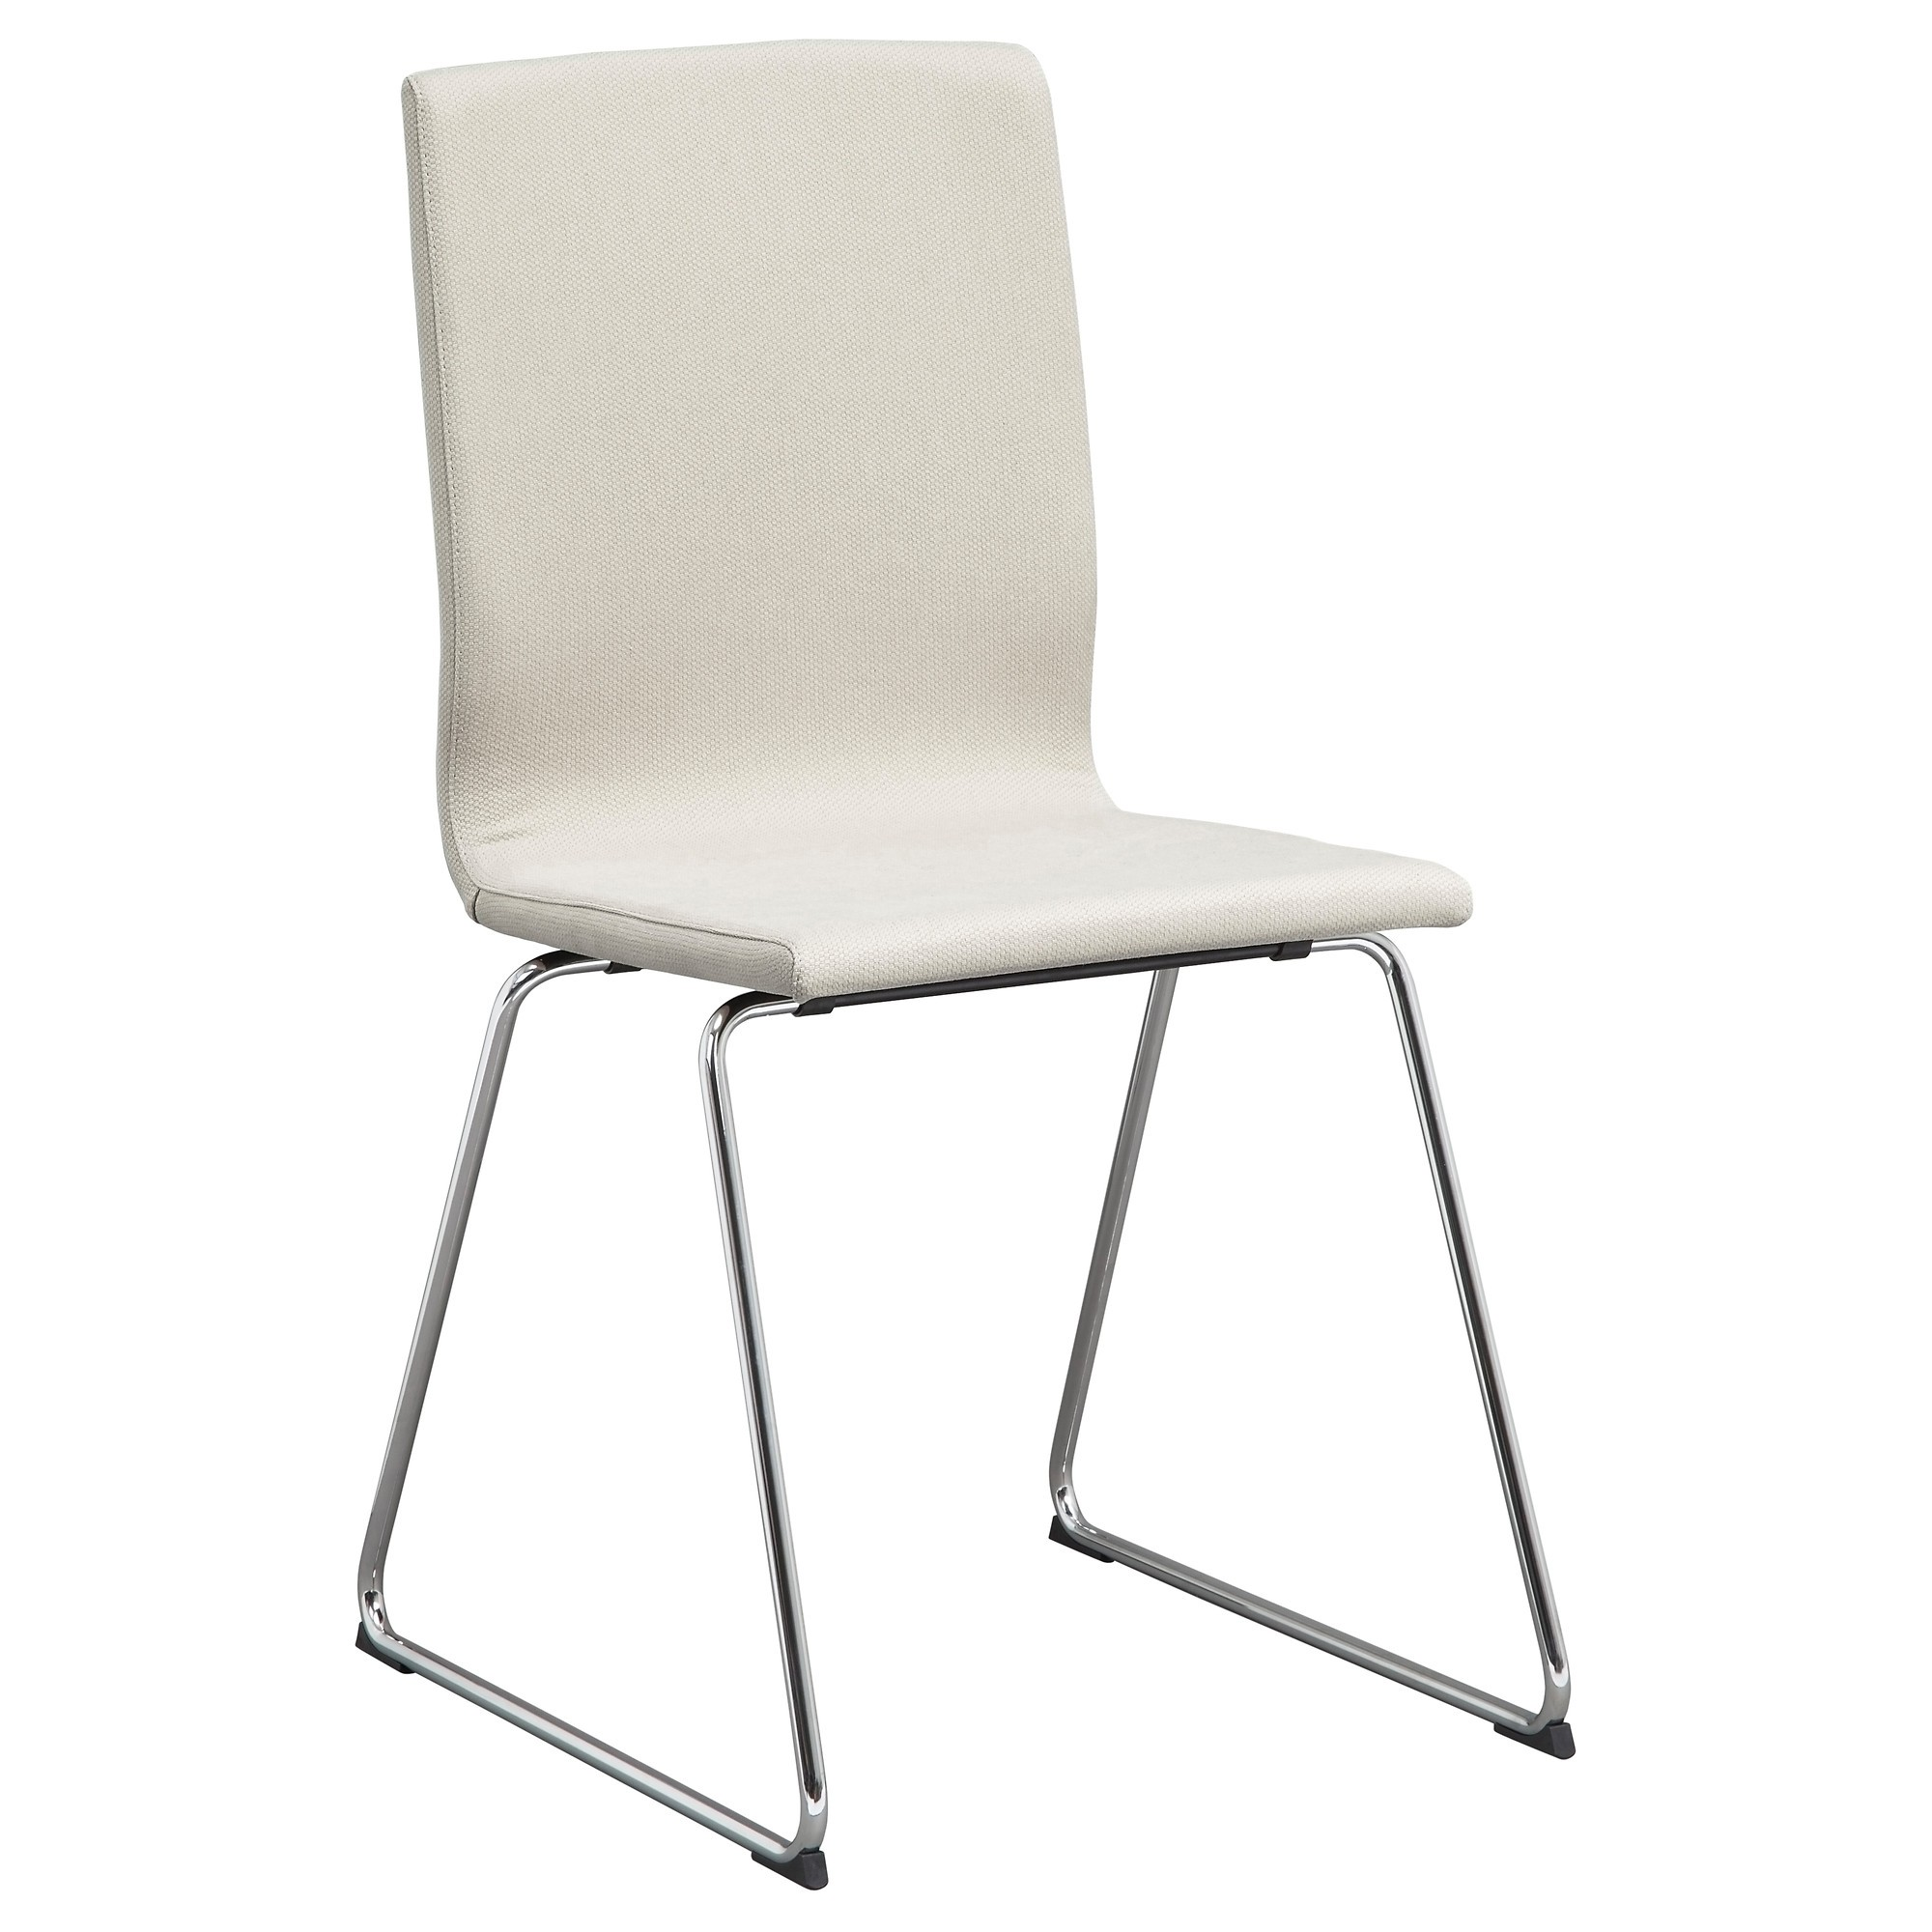 Chaises de sejour ikea chaise id es de d coration de for Chaises de sejour contemporaine